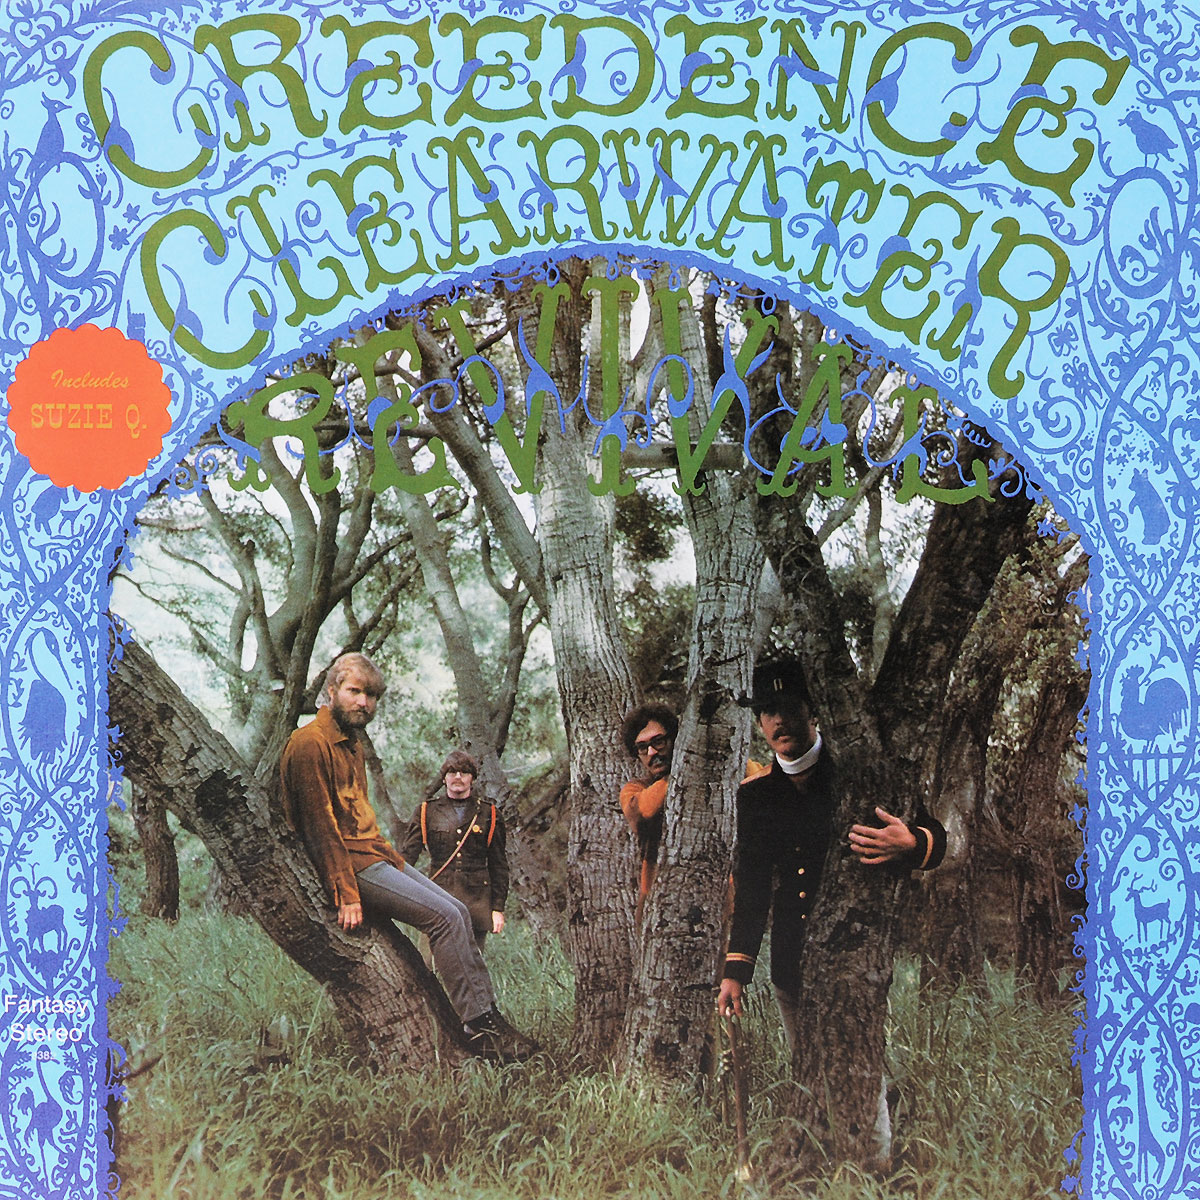 Creedence Clearwater Revival Creedence Clearwater Revival. Creedence Clearwater Revival (LP)